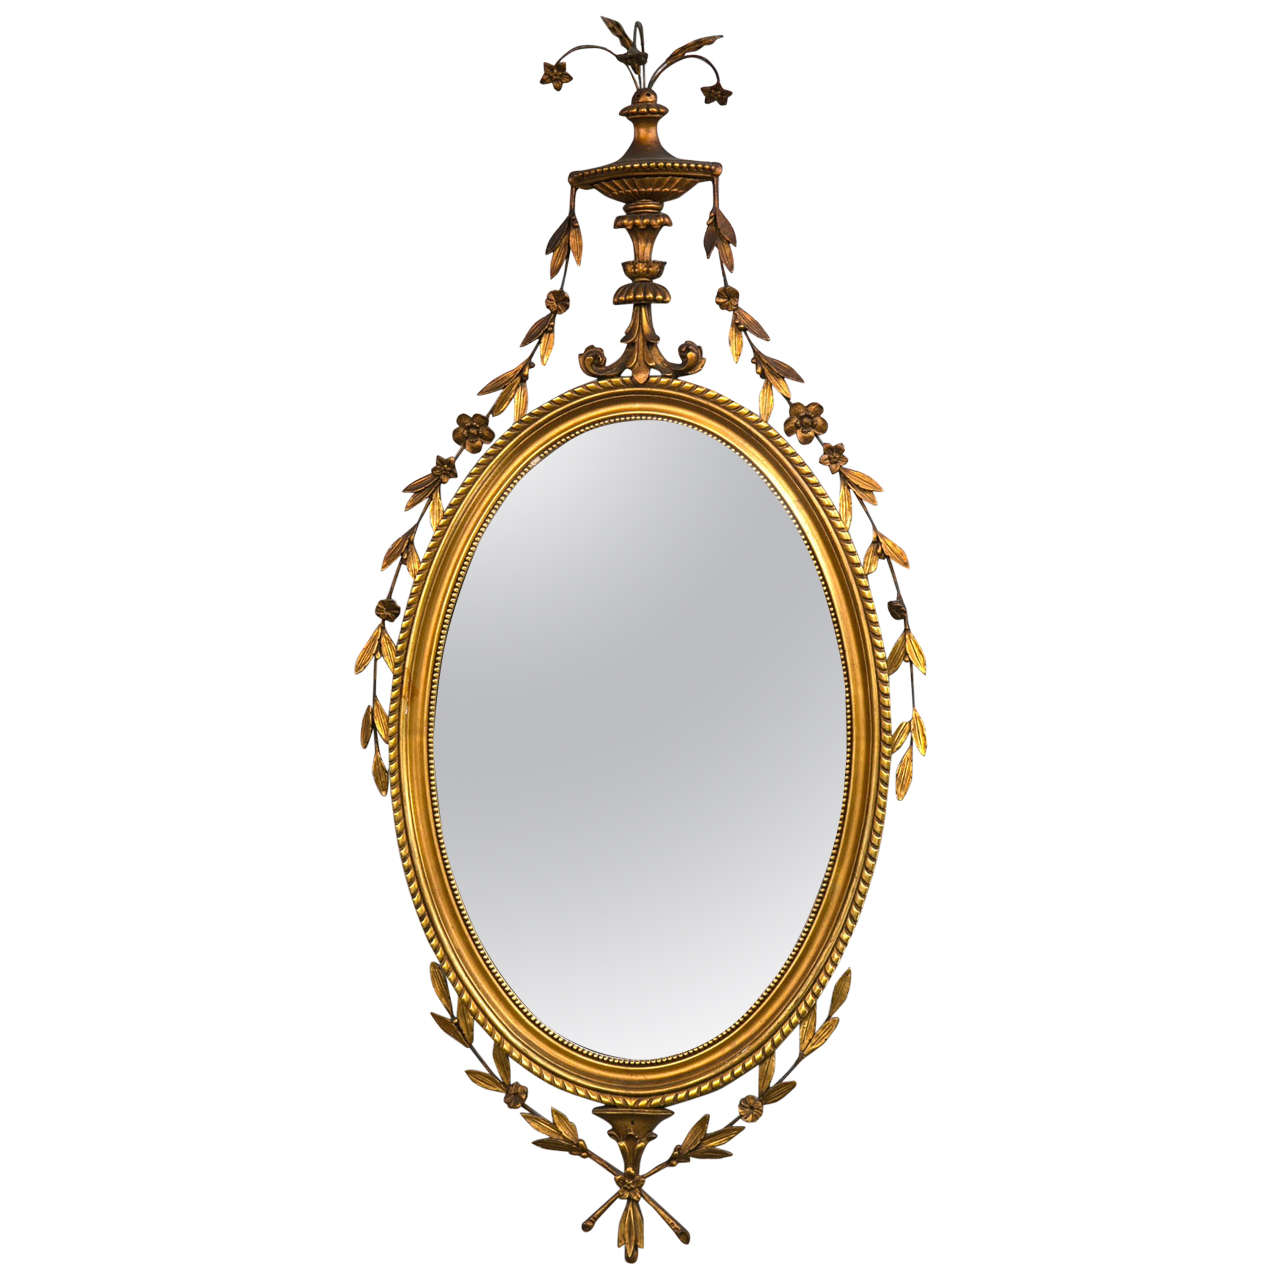 Giltwood and gesso carved adams style mirror for sale at for Adam style mirror